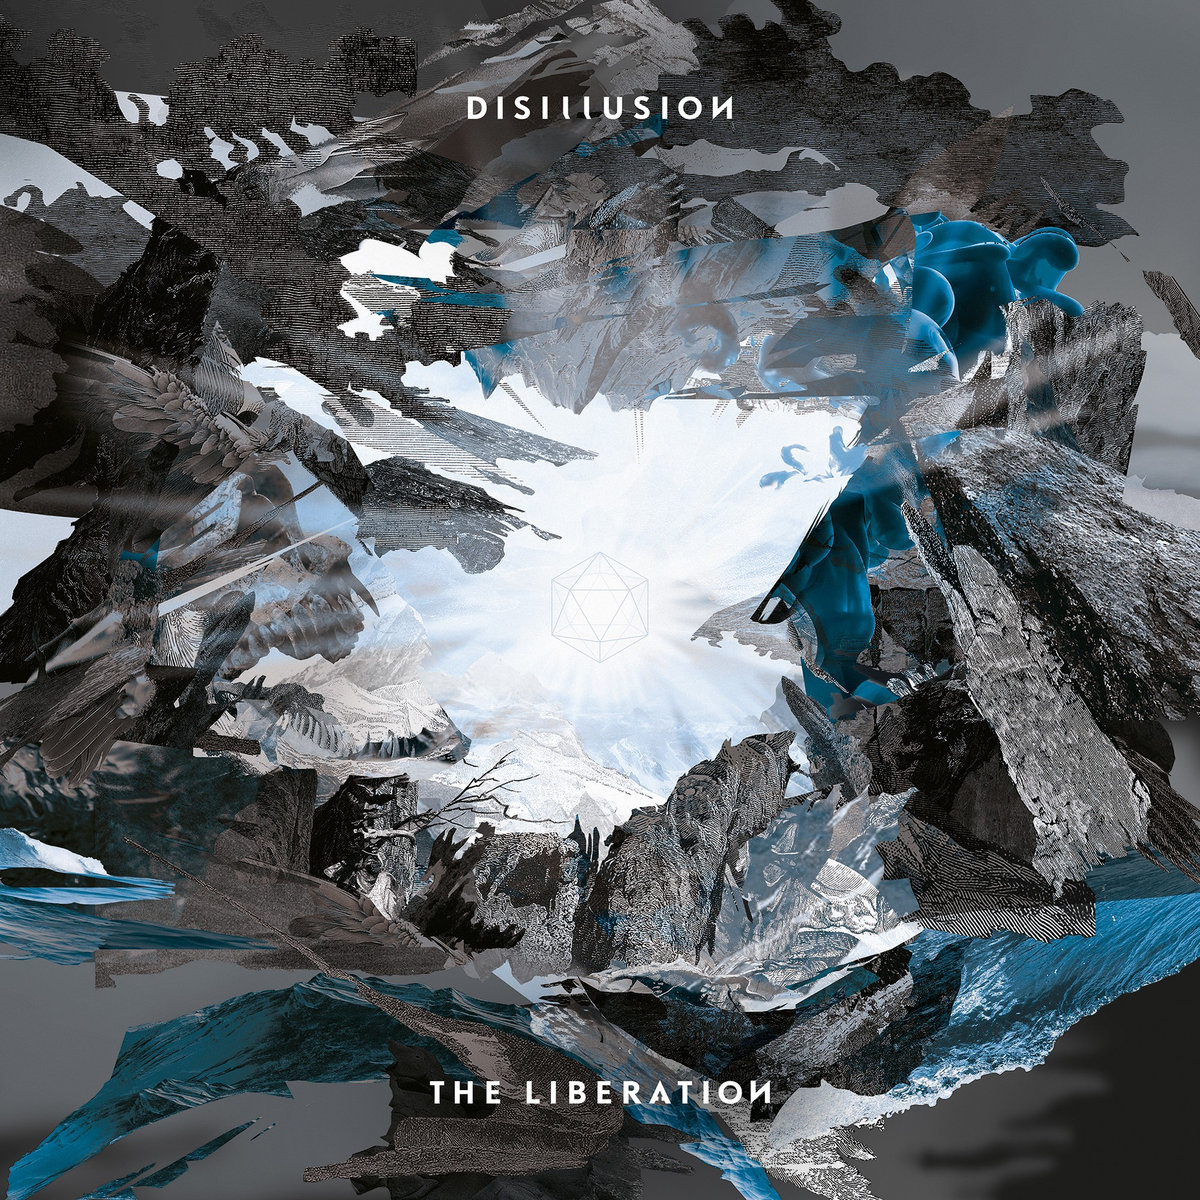 Disillusion: The Liberation